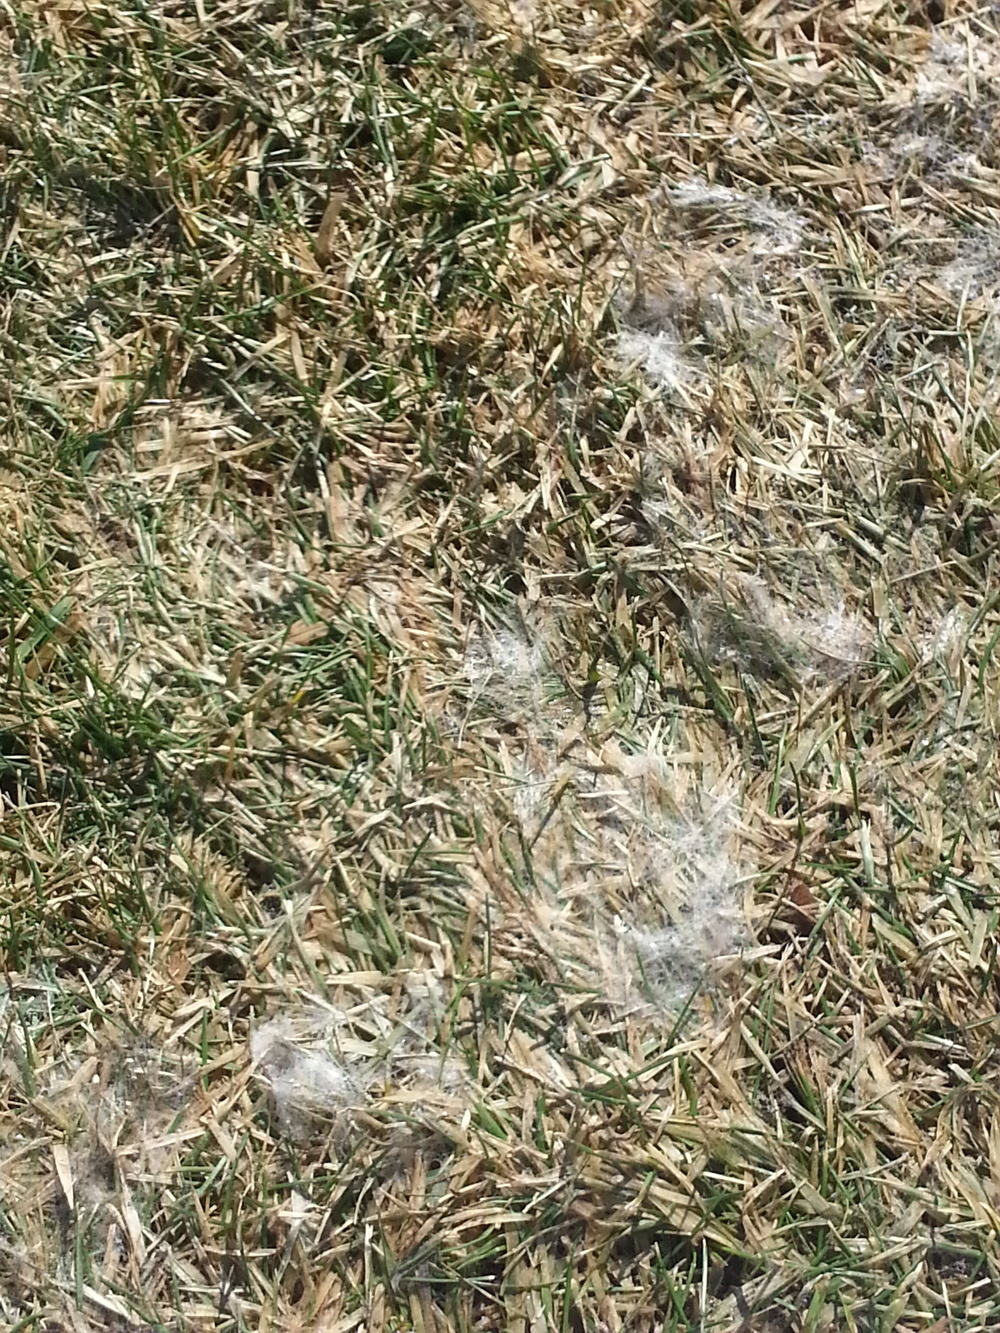 Example of Snow Mold